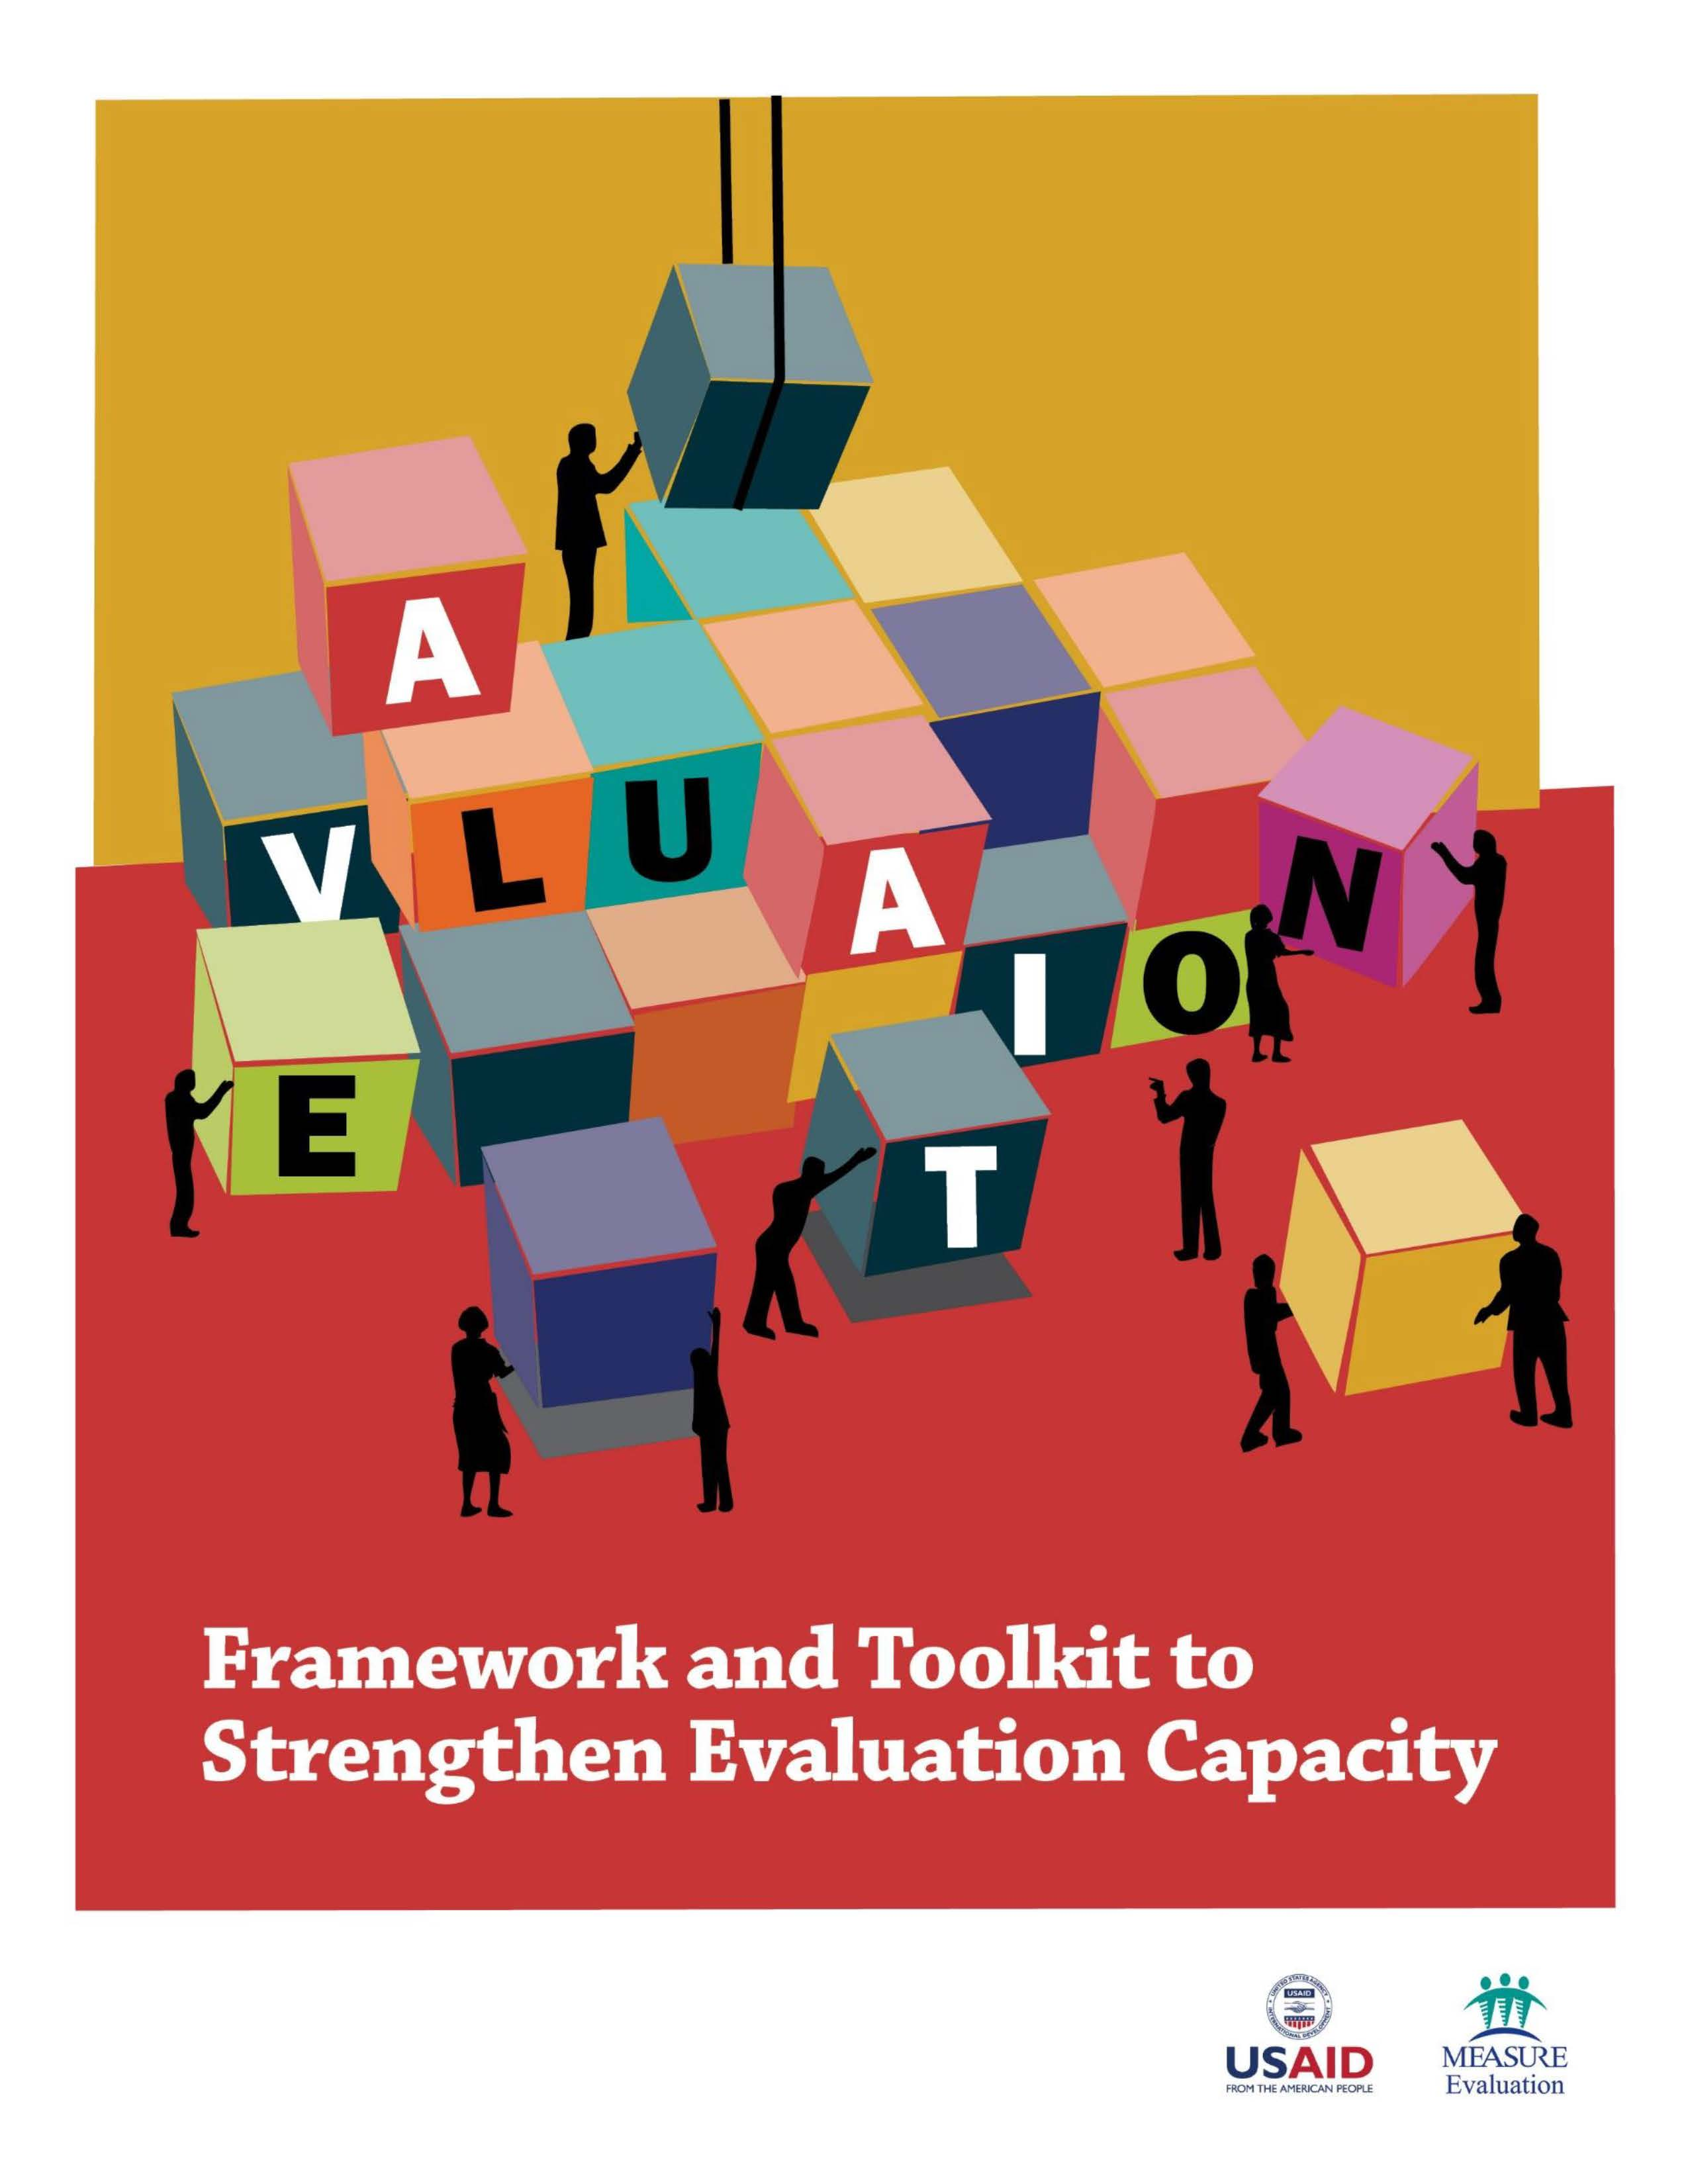 Framework and Toolkit to Strengthen Evaluation Capacity